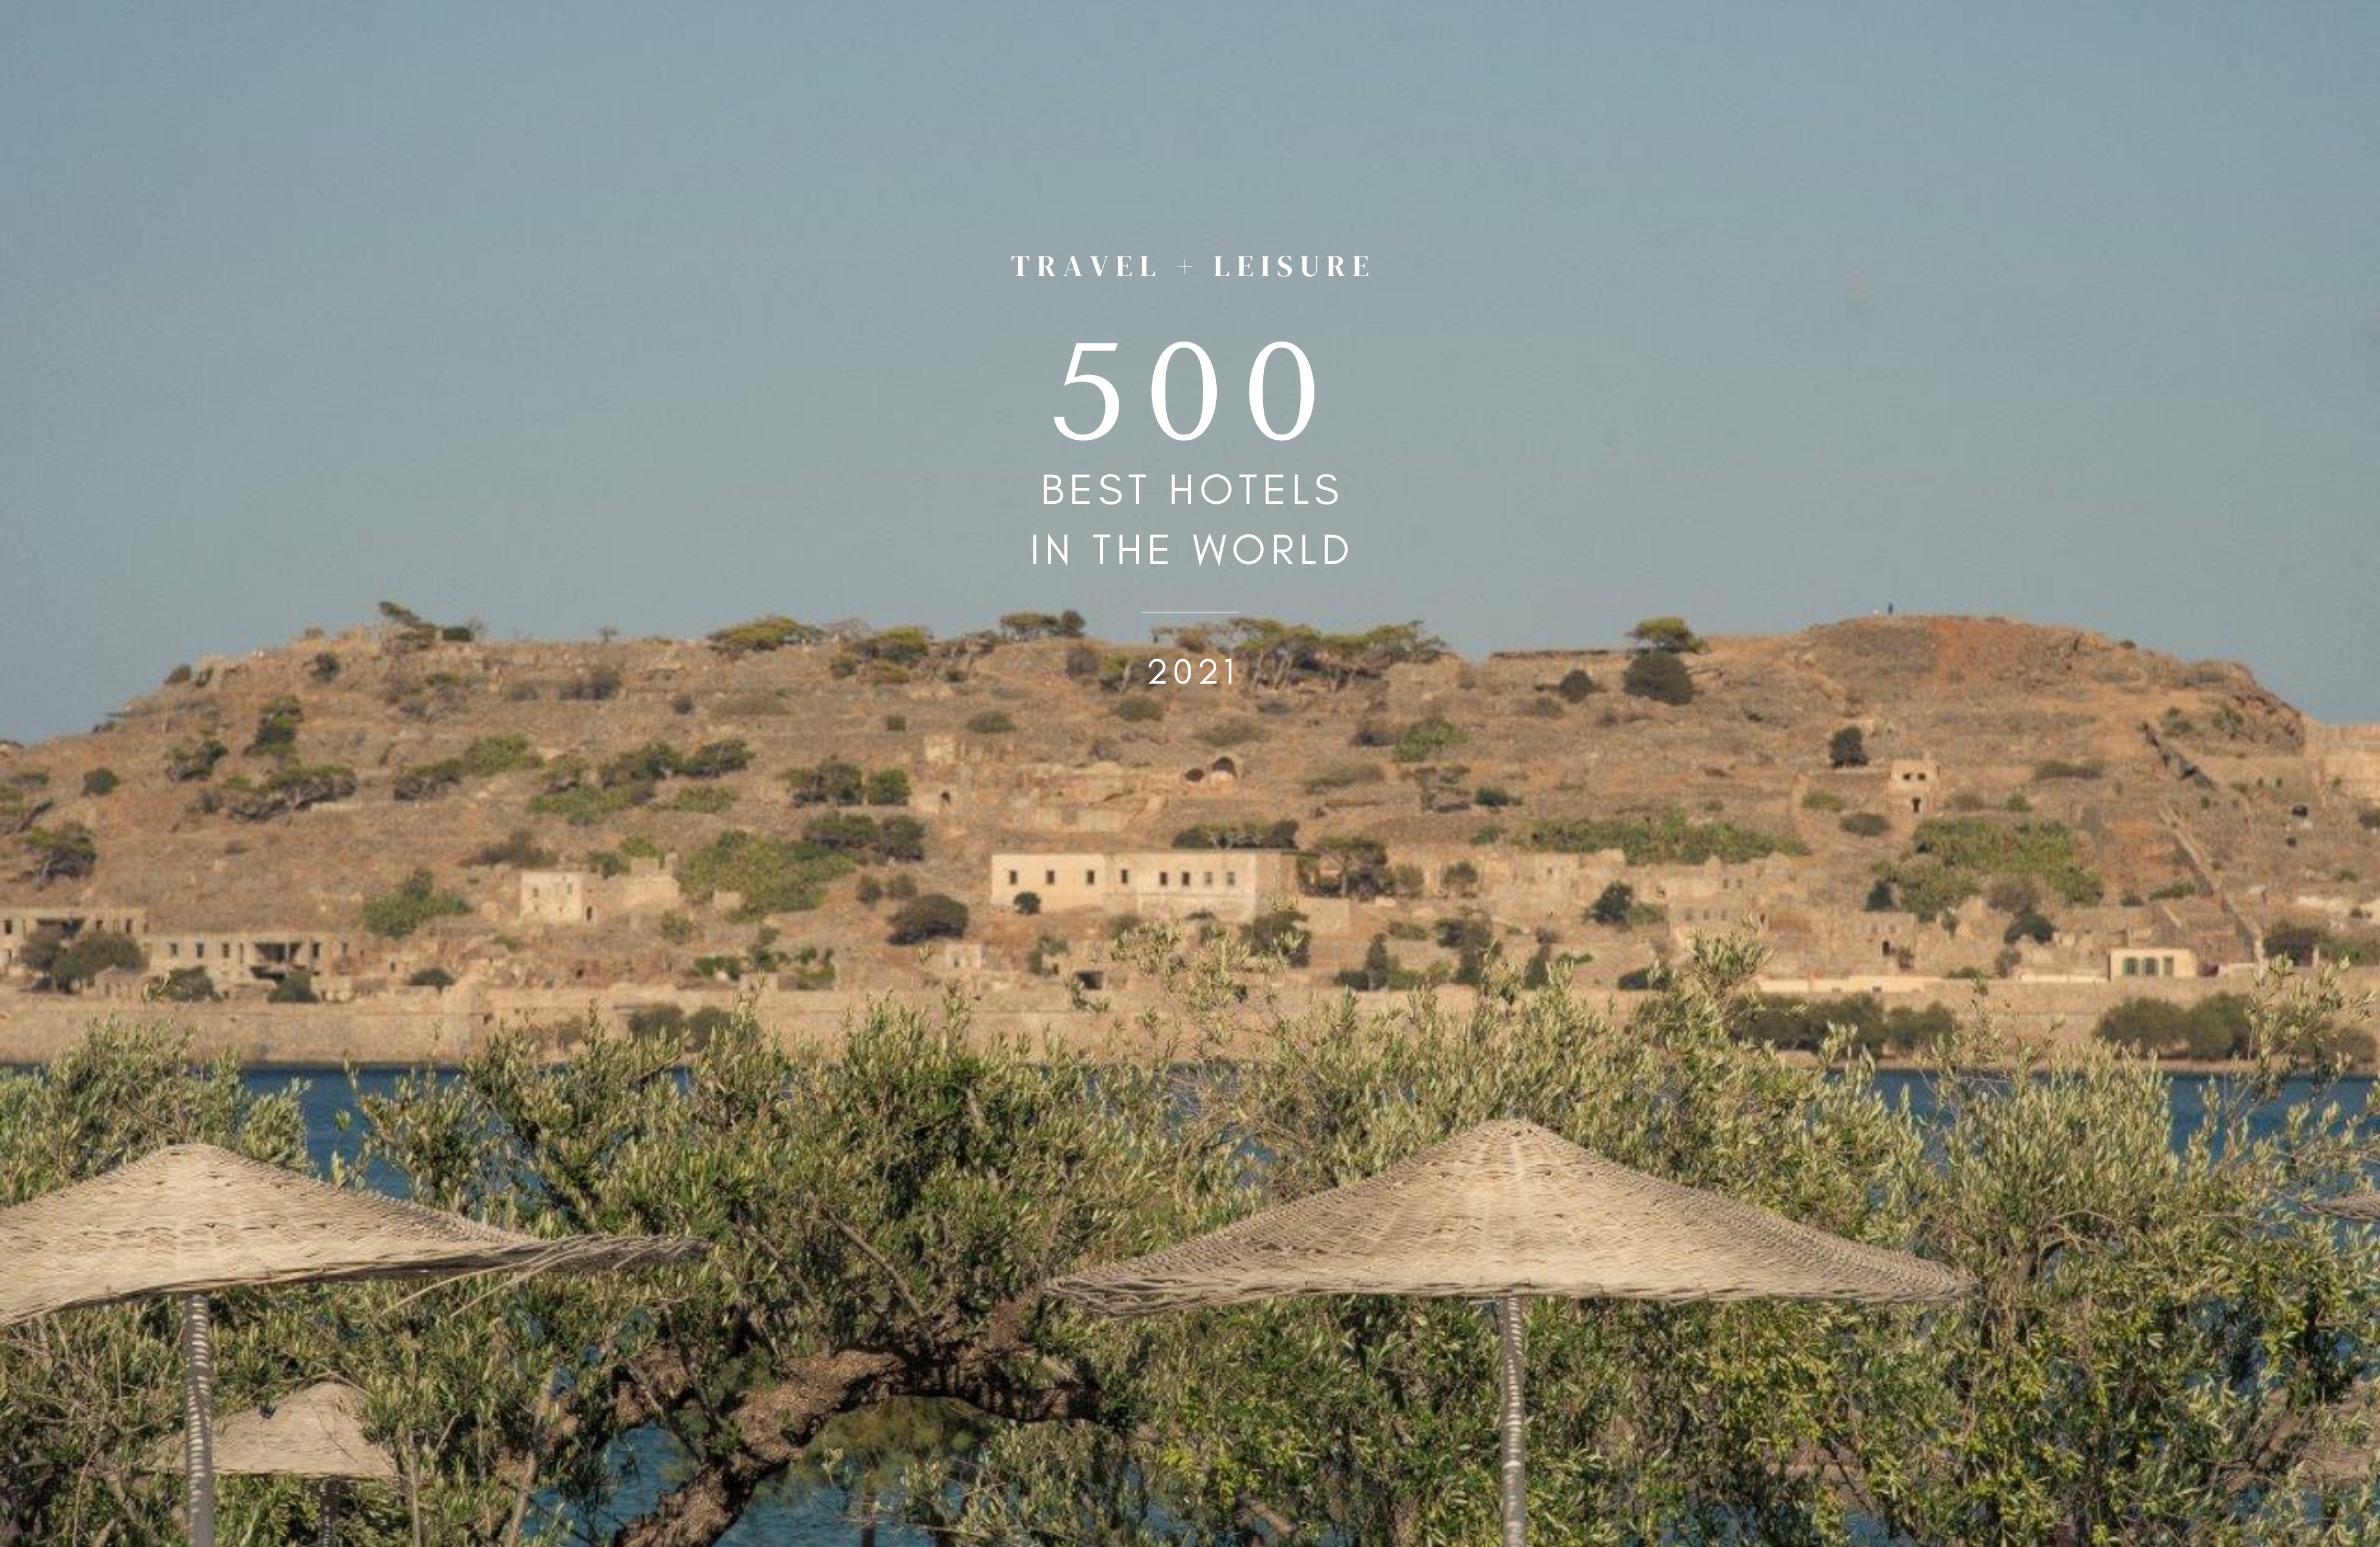 Travel + Leisure List Of The 500 Best Hotels In The World, 2021